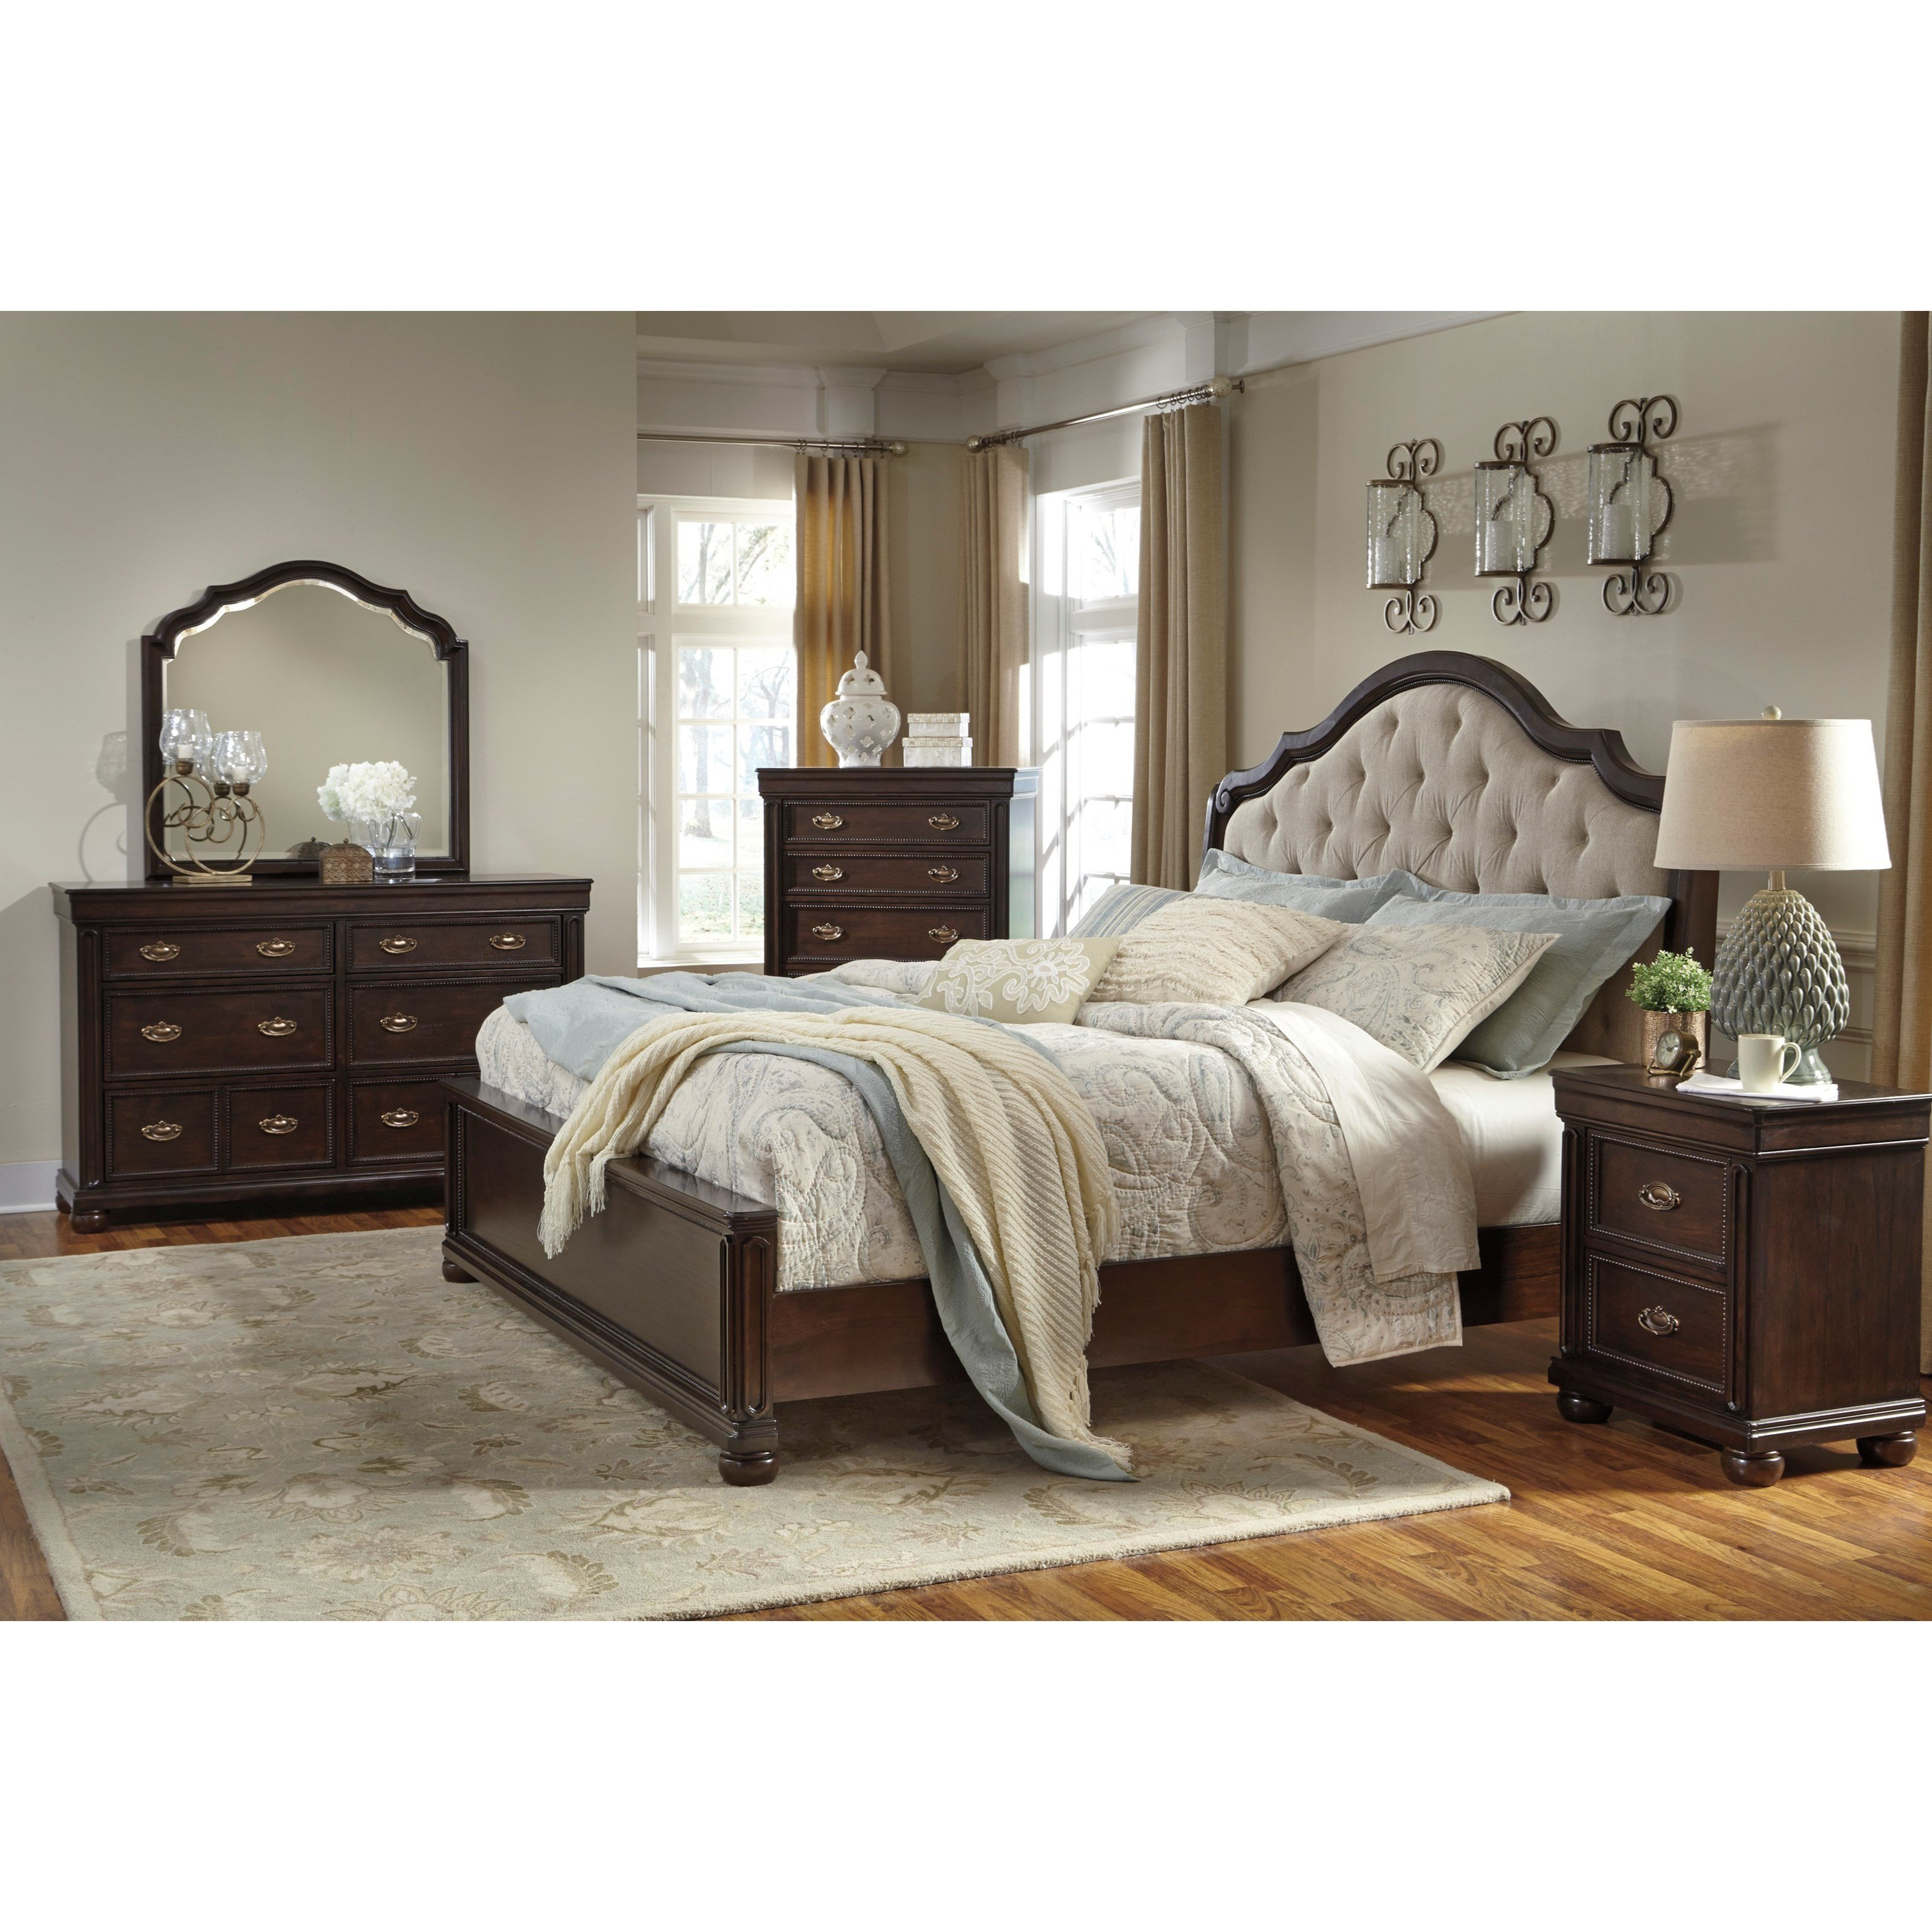 Best Signature Design By Ashley Moluxy King Bedroom Group With Pictures